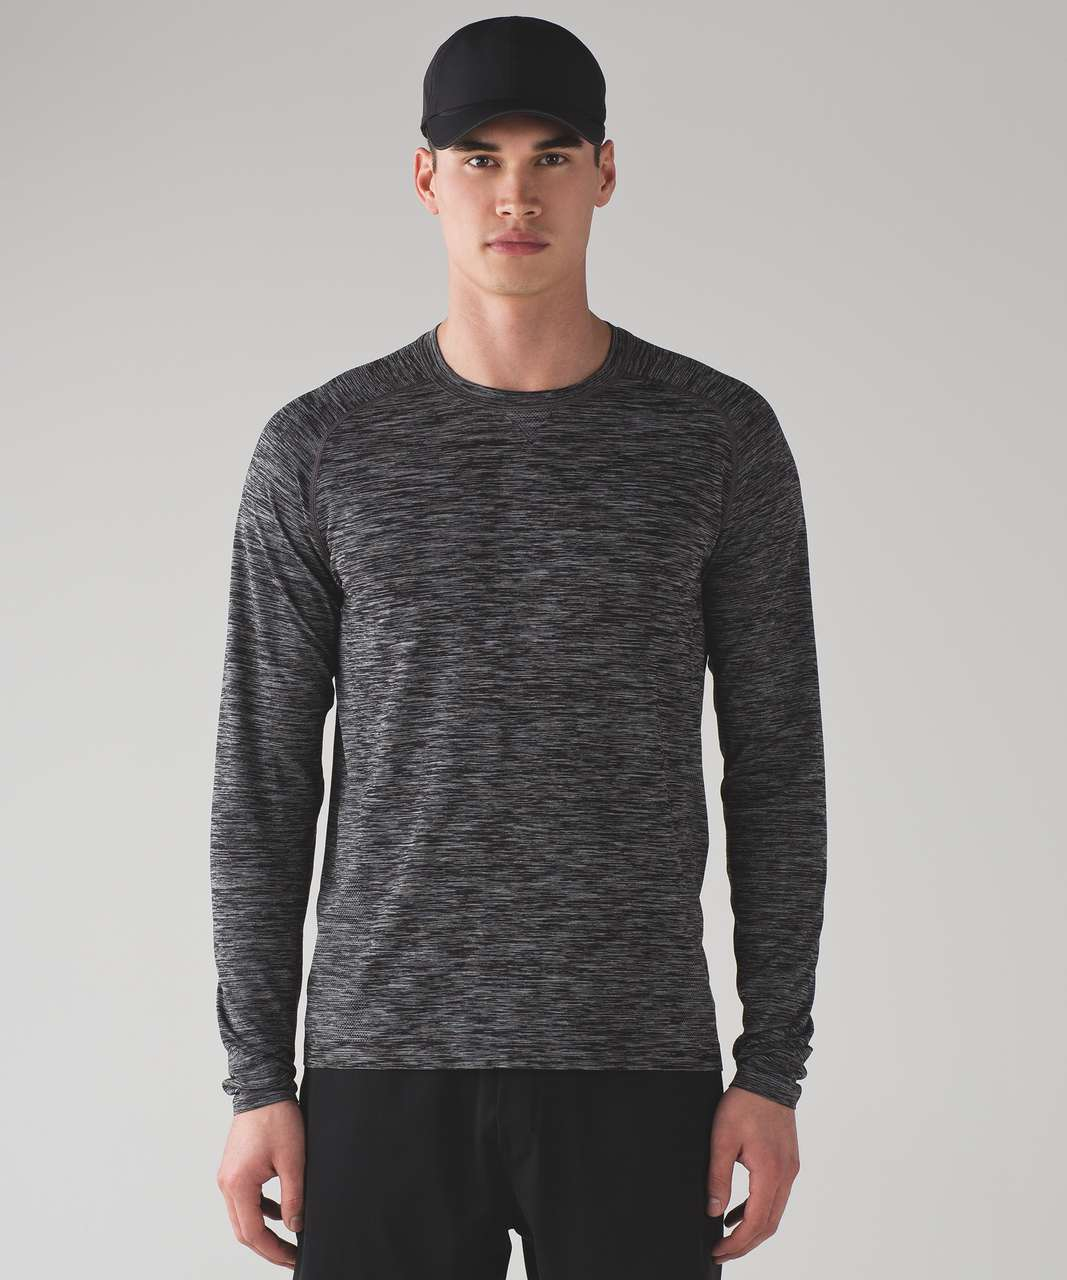 7457b90a8 Lululemon Metal Vent Tech Long Sleeve - Heathered Black - lulu fanatics